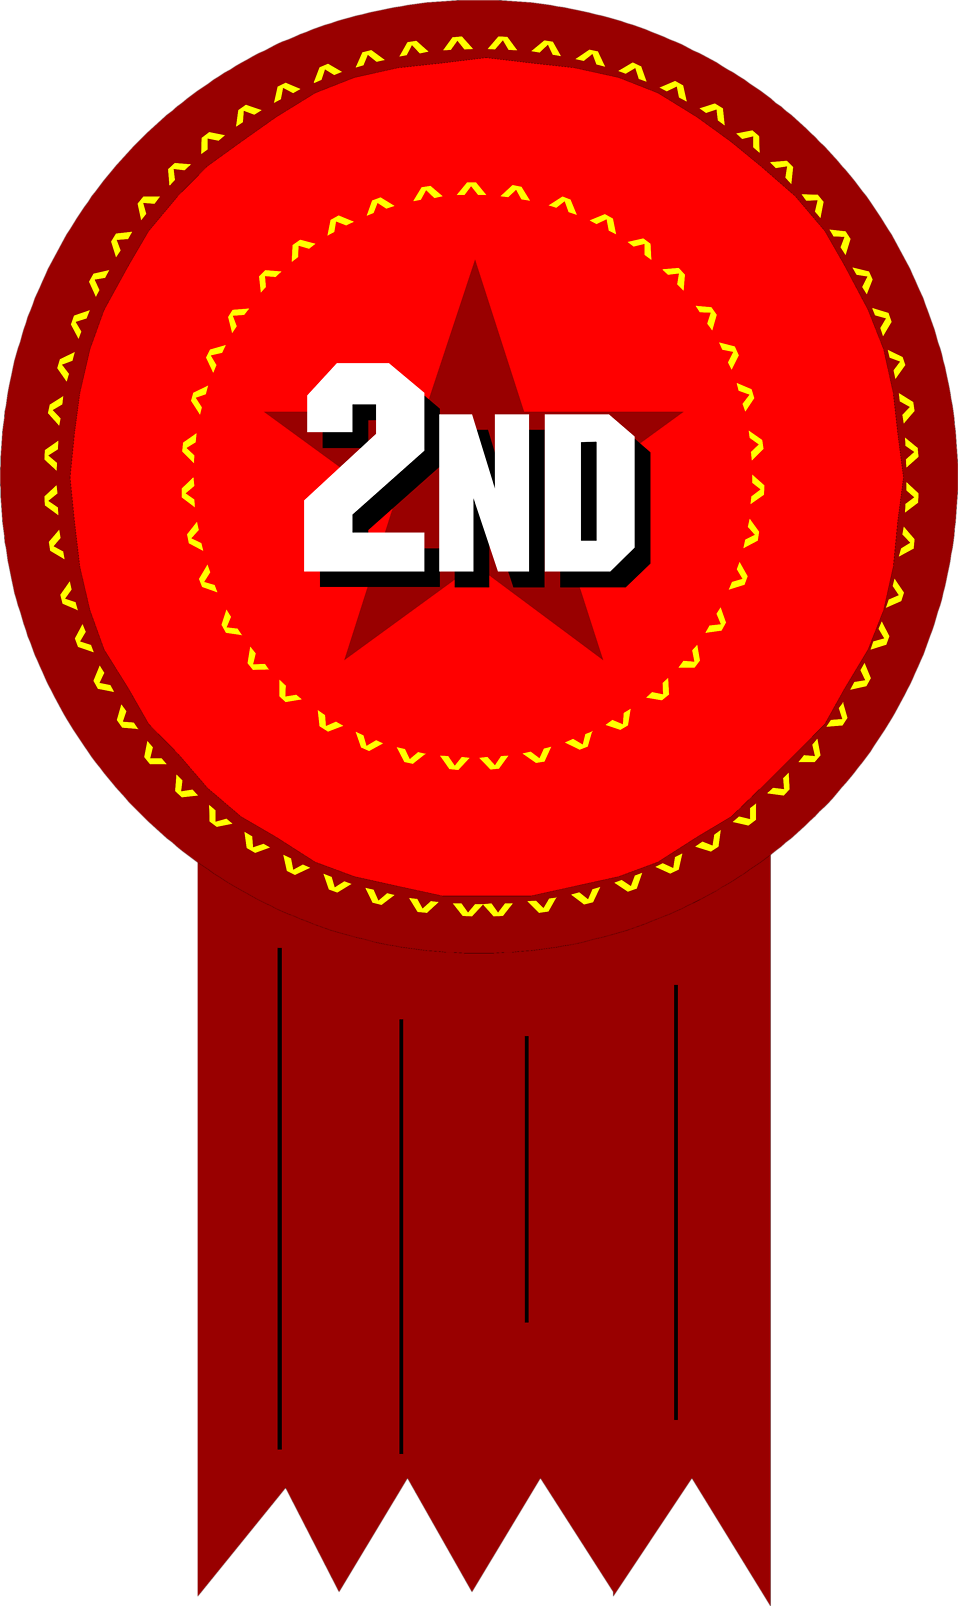 First place award badge template visualbrainsfo first place award badge template maxwellsz